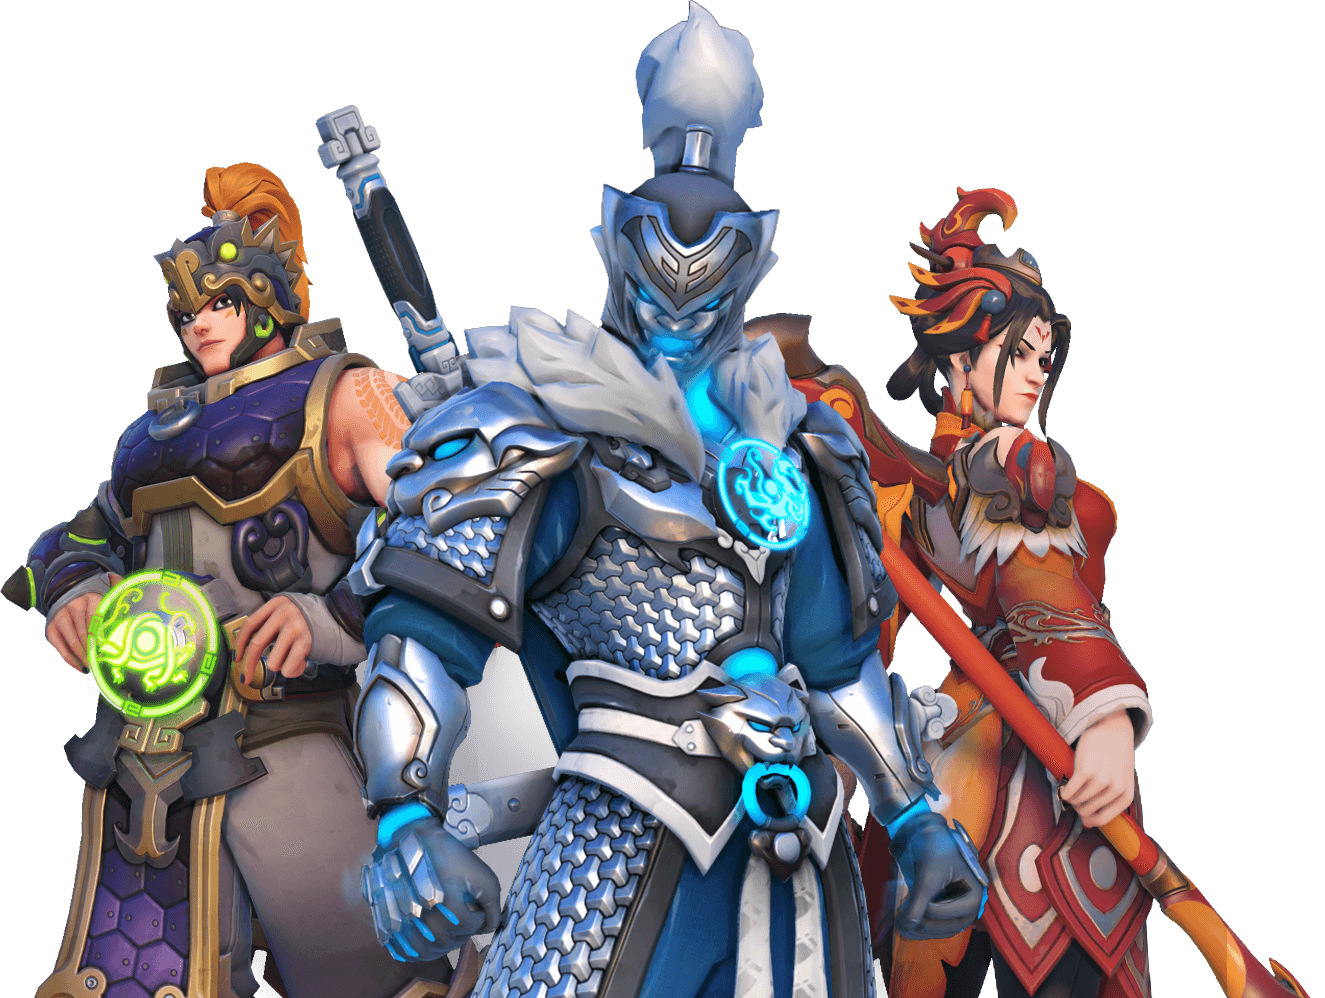 Play of the game overwatch png. Lunar new year